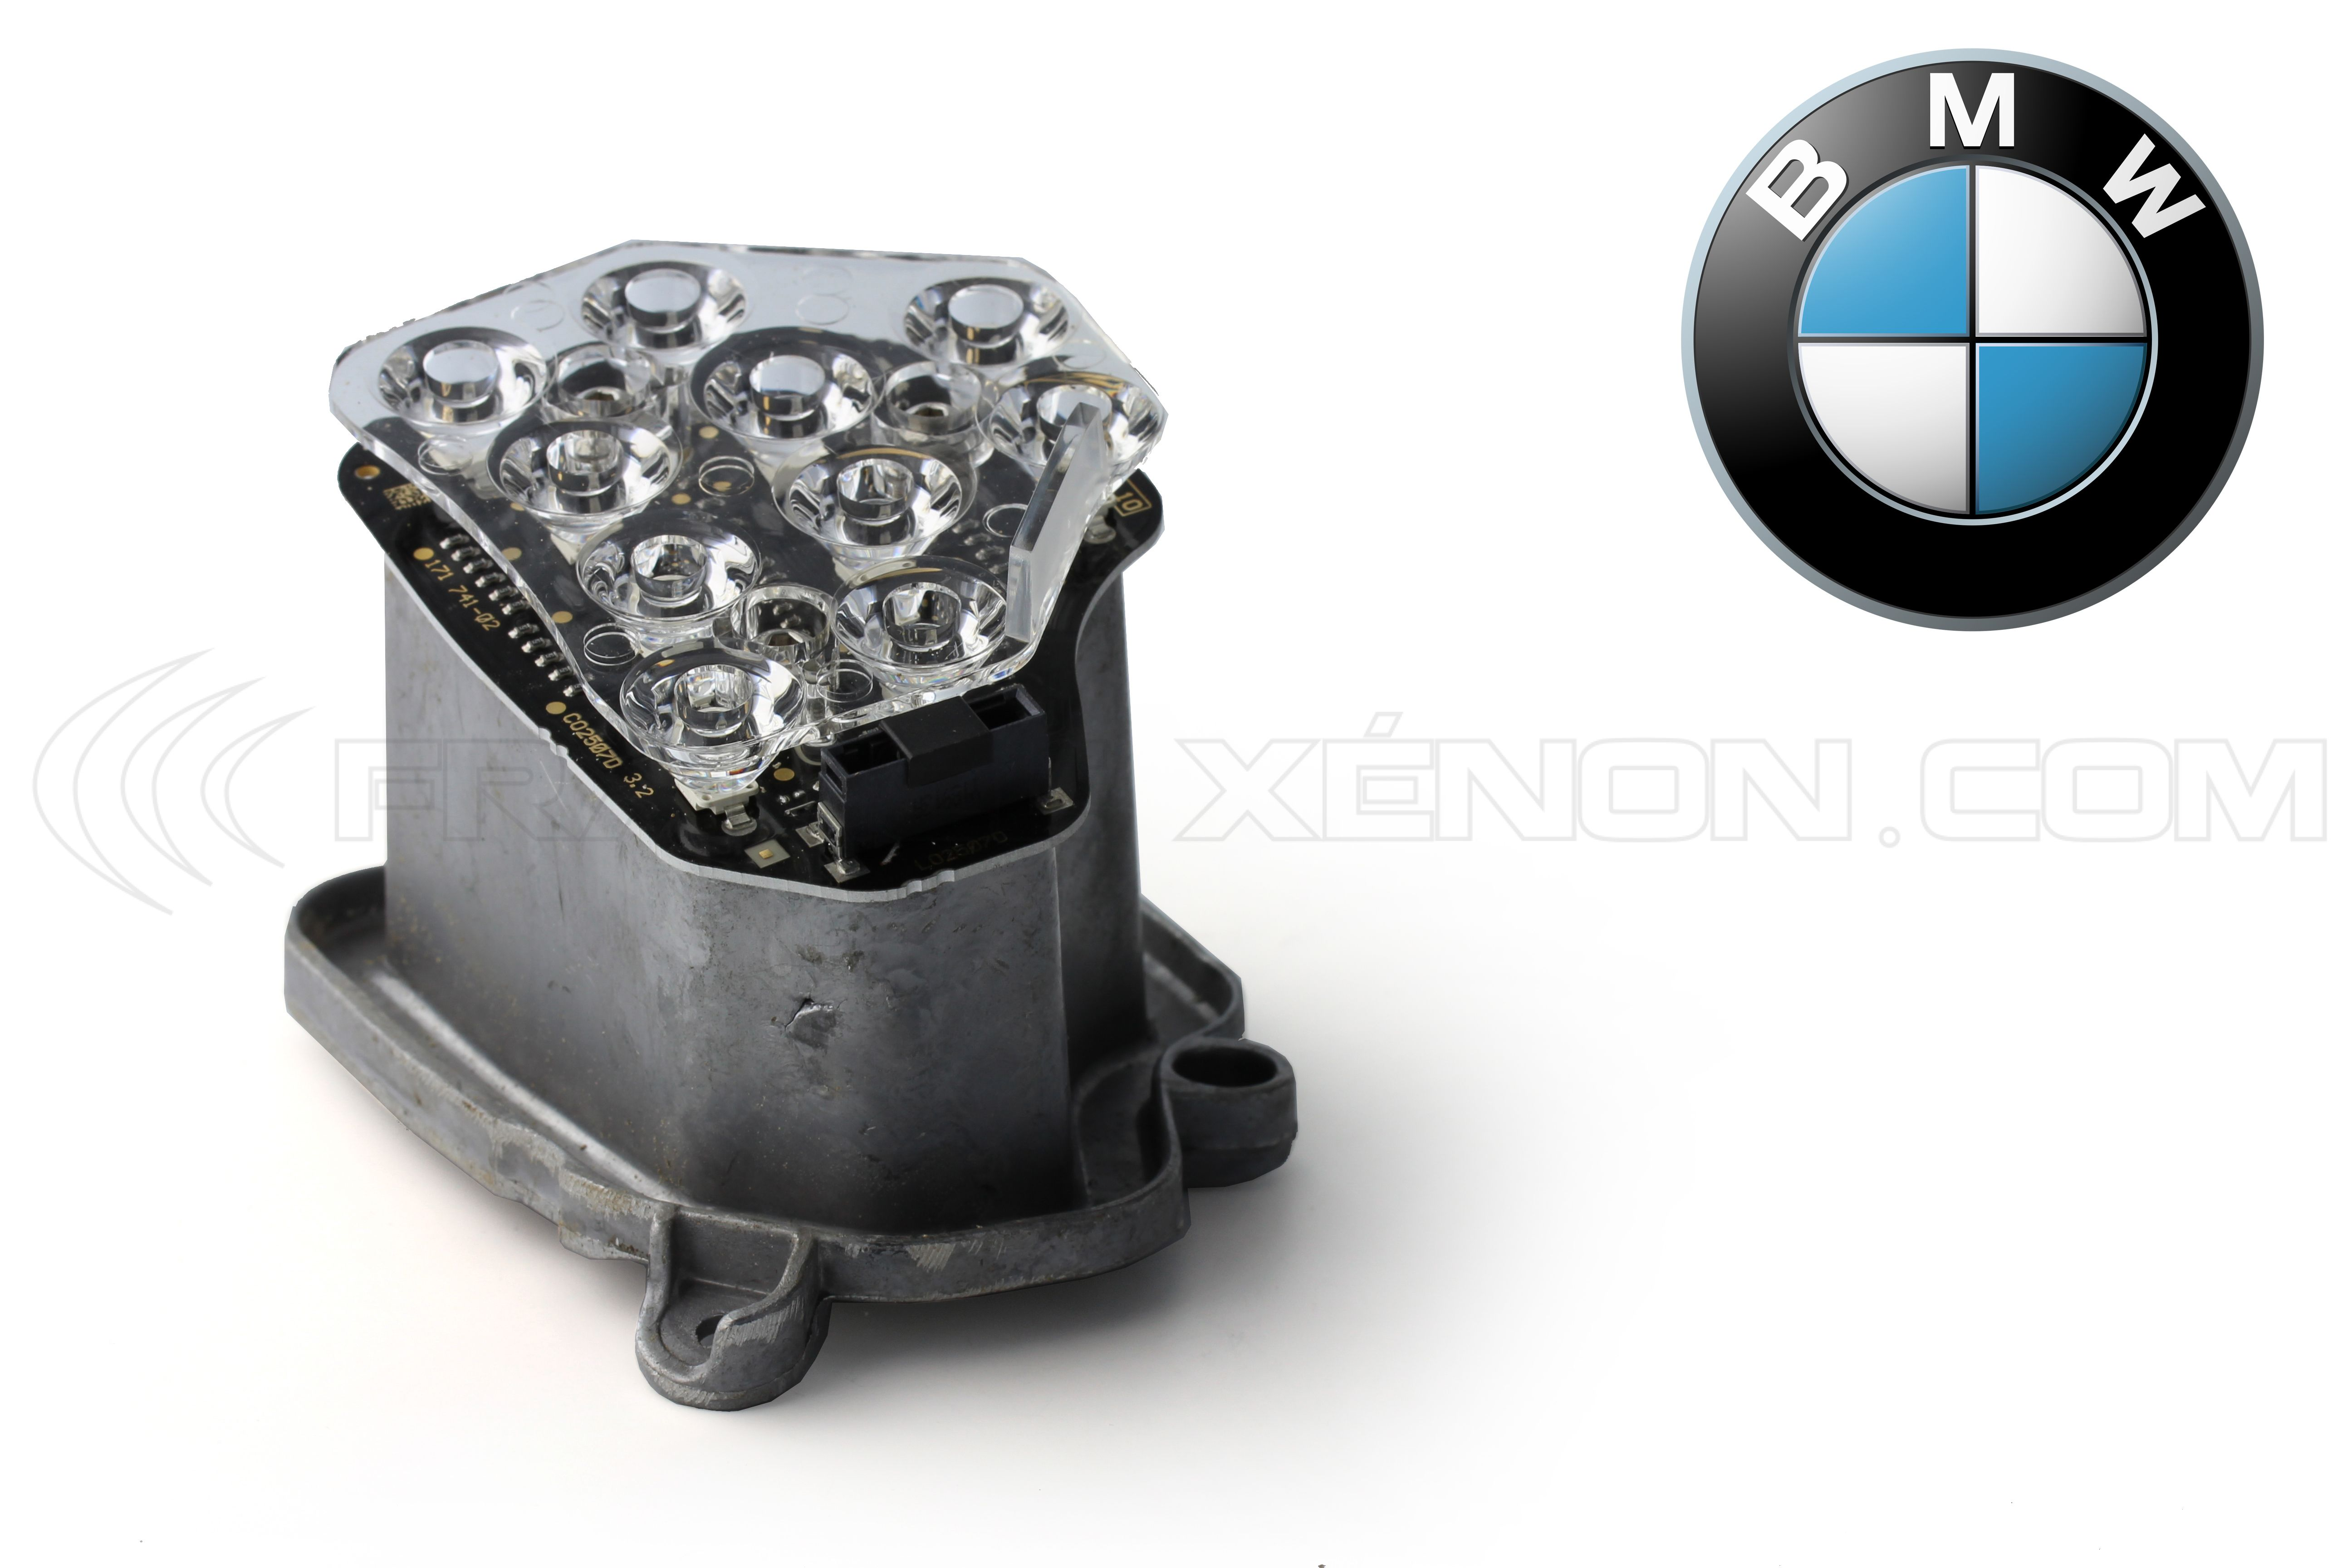 Bmw F07 Xenon Headlight Indicator Left Side 63127262833 Insert Turn Audio By 741 Signal France